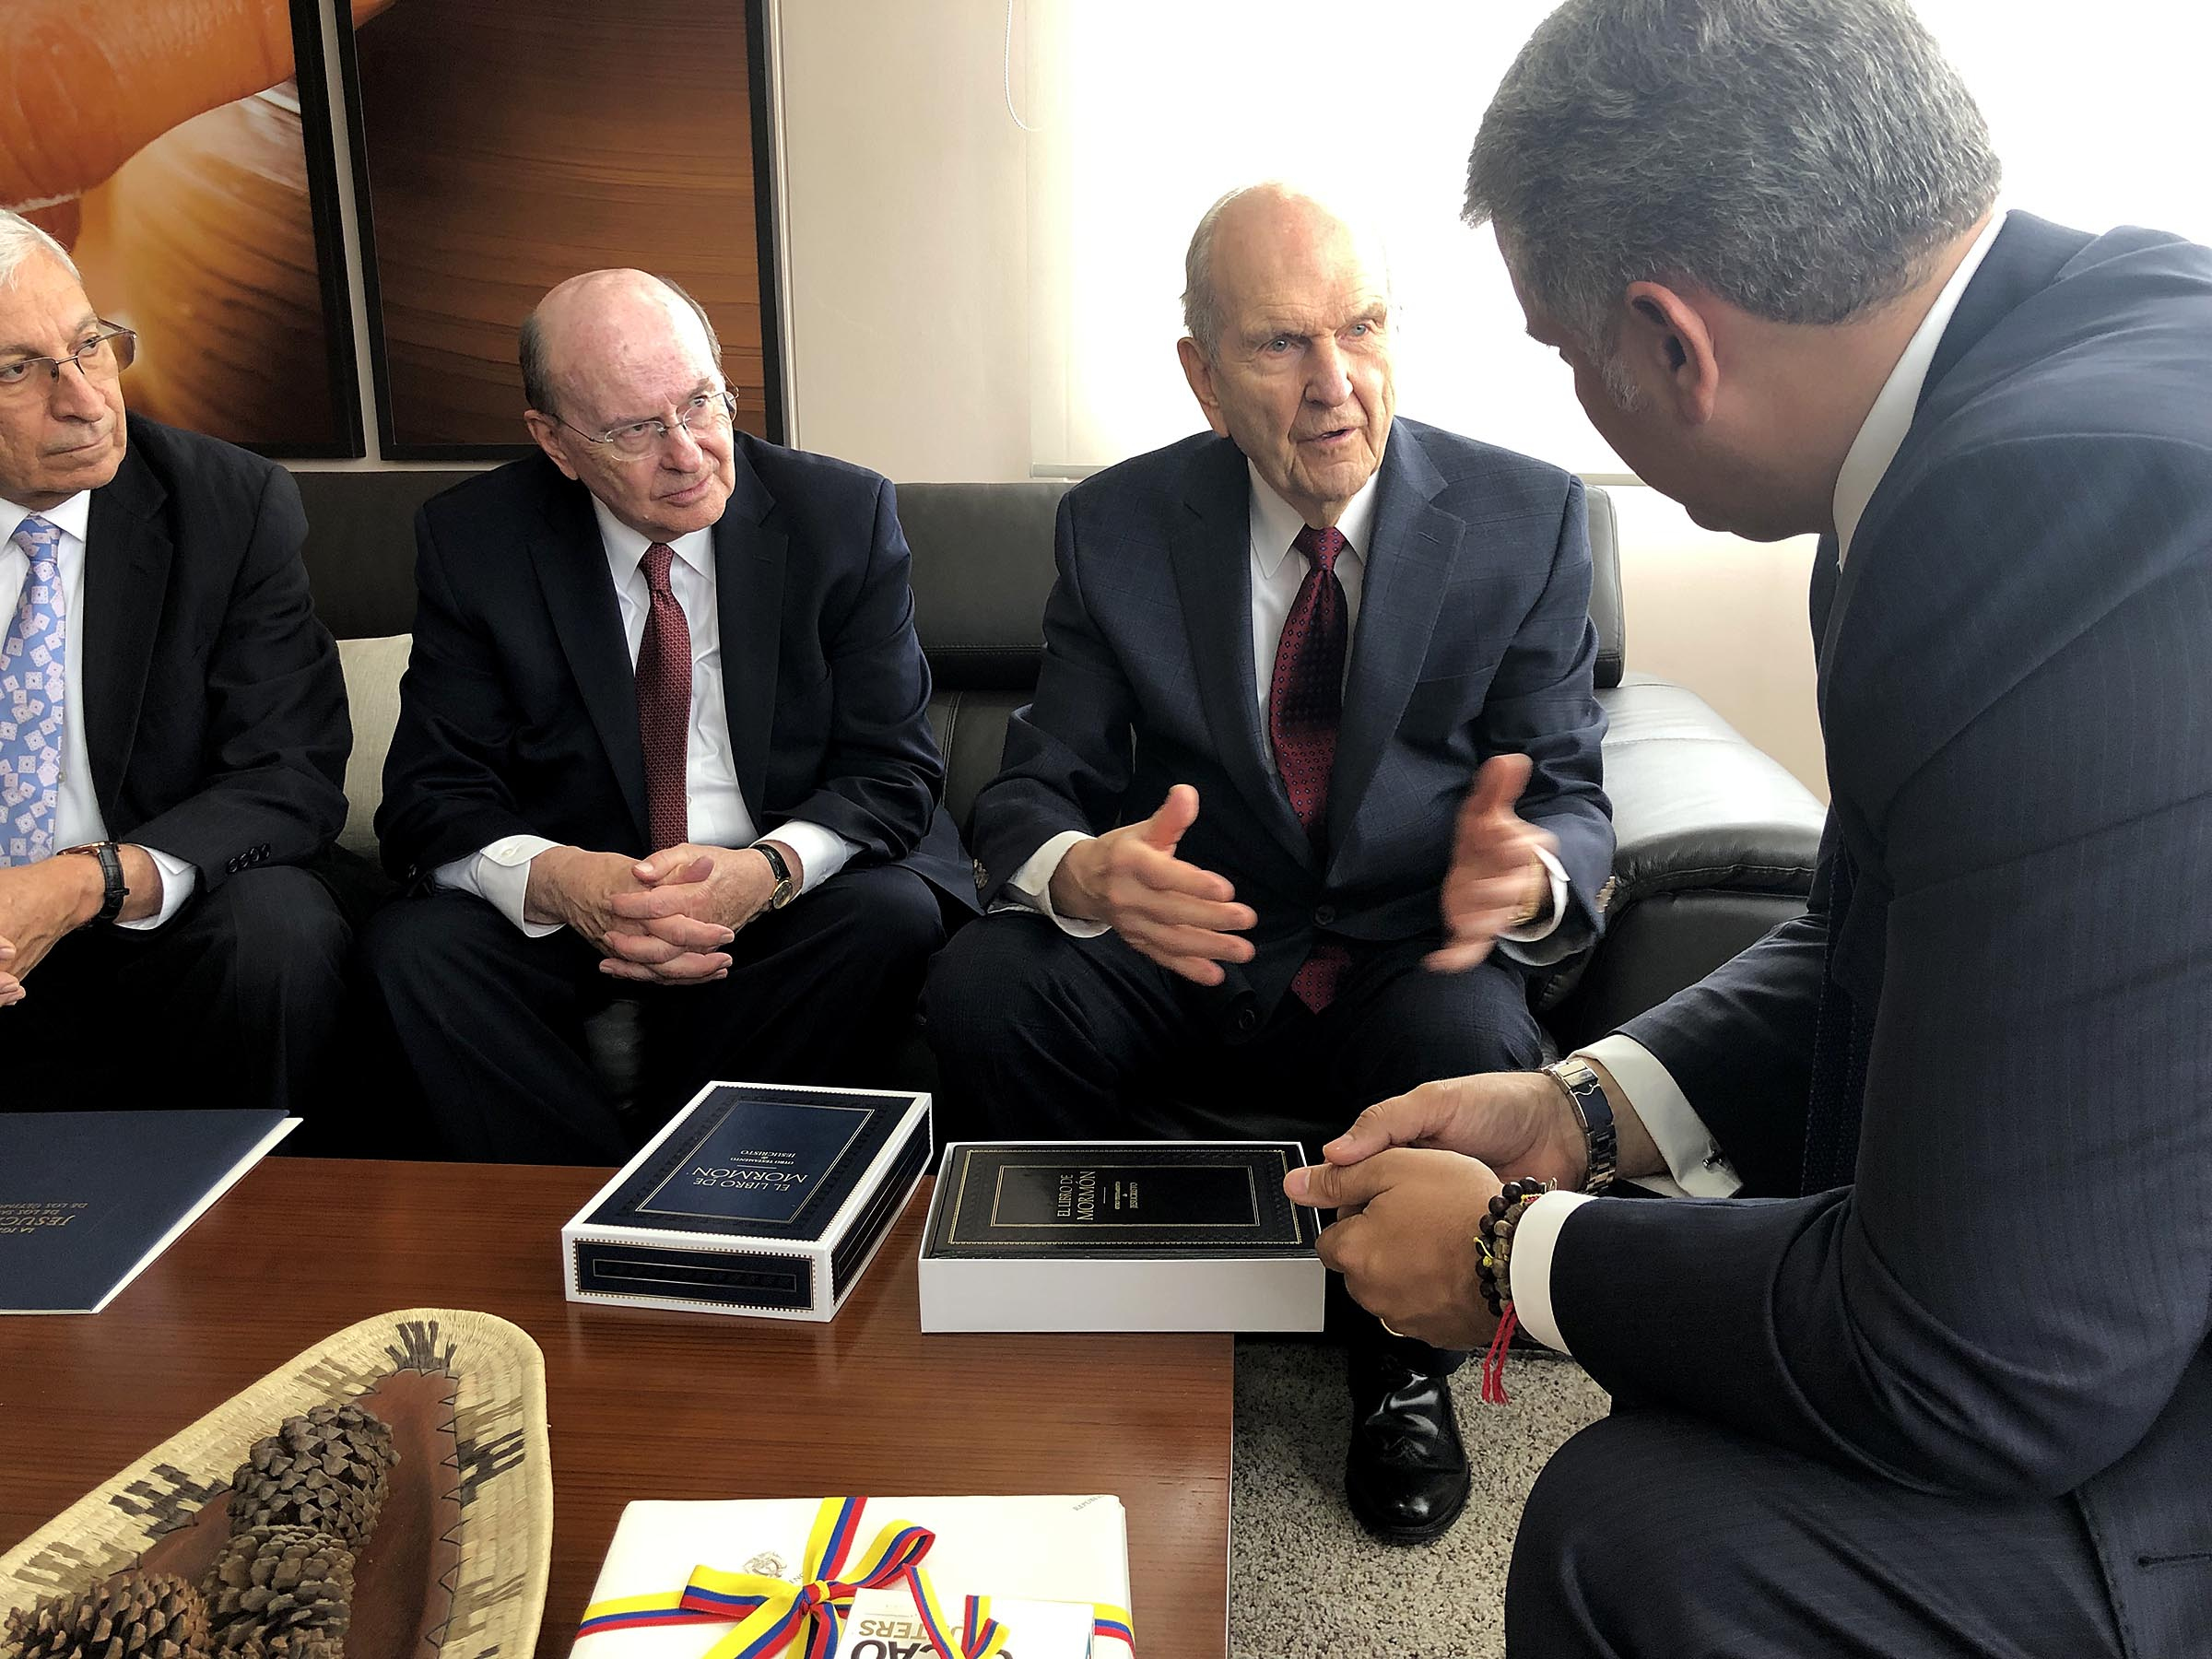 From left, Elder Enrique R. Falabella, General Authority Seventy, Elder Quentin L. Cook of the Quorum of the Twelve Apostles, and President Russell M. Nelson of The Church of Jesus Christ of Latter-day Saints meet with Colombia President Iván Duque Márquez, right, in Bogota, Colombia, Monday, Aug. 26, 2019.